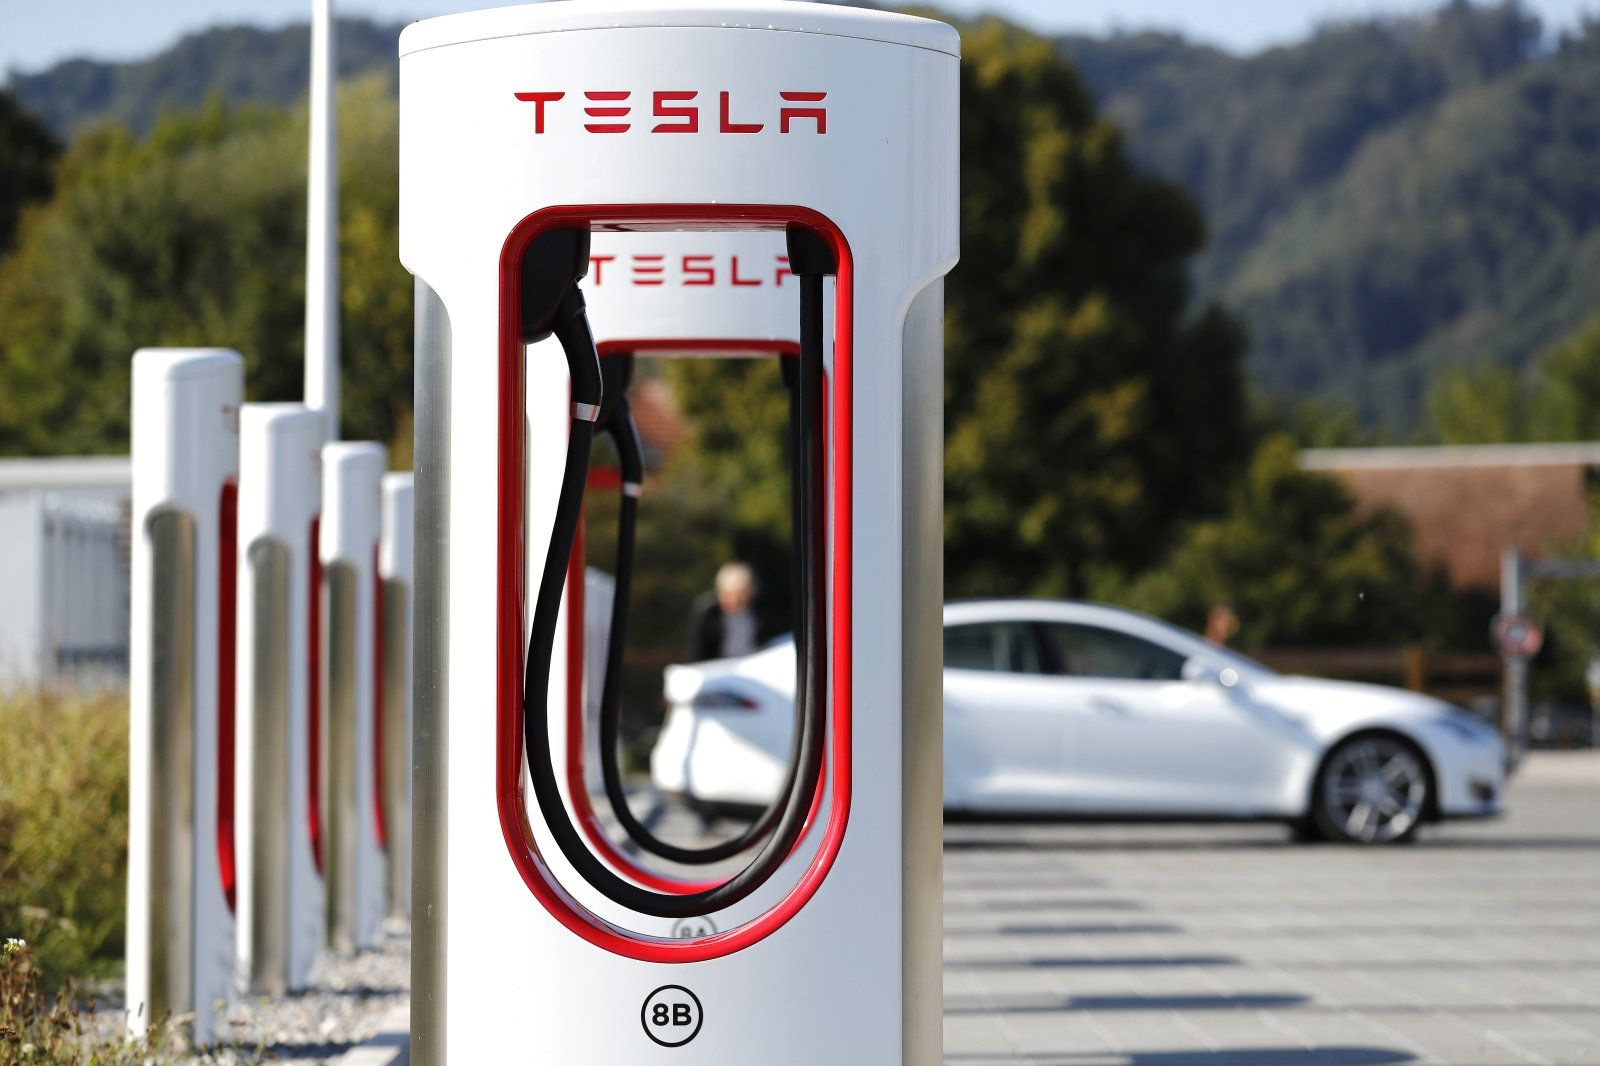 A Tesla Inc. Model S electric vehicle charges at a Supercharger station in Rubigen, Switzerland, on Thursday, Aug. 16, 2018. Tesla chief executive officer Elon Muskhas captivated the financial world by blurting out via Twitterhisvision of transformingTeslainto a private company. Photographer: Stefan Wermuth/Bloomberg via Getty Images